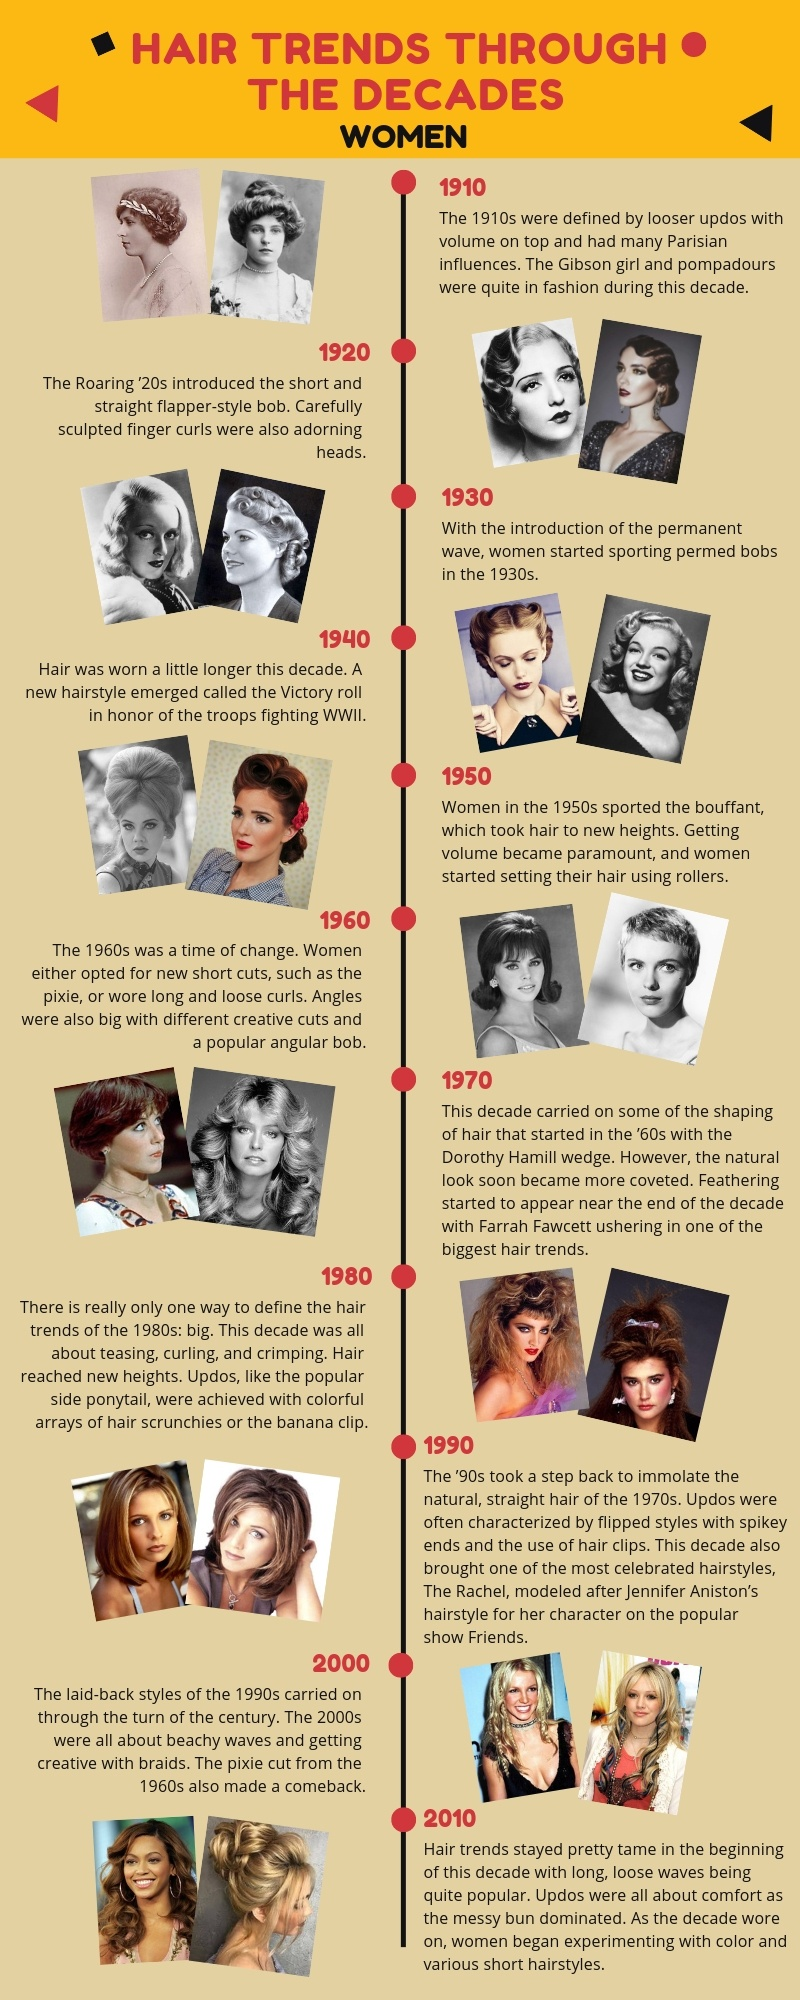 Hair Trends Through the Decades for women